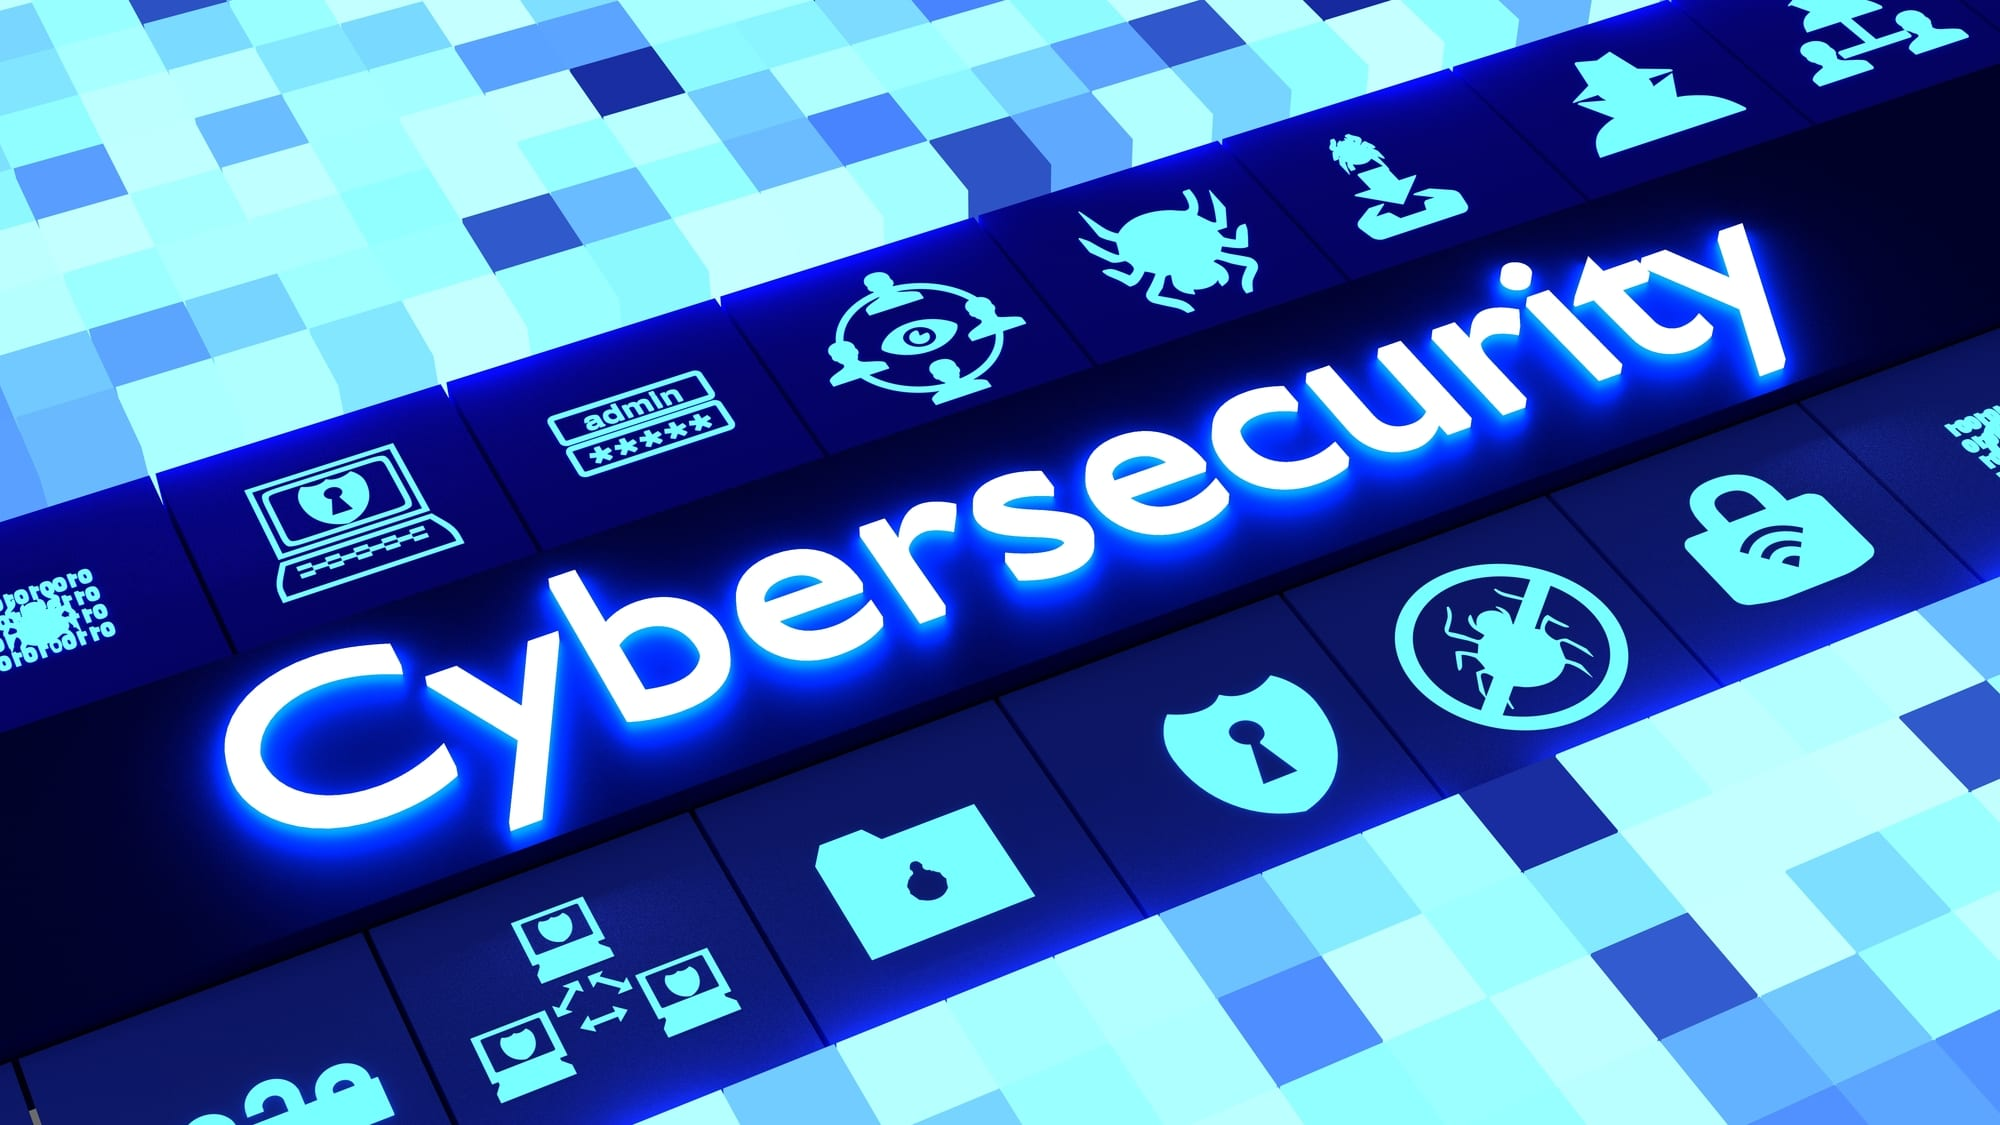 free cyber security course; cyber security courses in india; cyber security courses after 12th; cyber security course syllabus; cyber security course pdf; cyber security course in delhi; cyber security course fees; cyber security course eligibility; free online cyber security course in india; cyber security course with placement; cyber security course fees; cyber security course fees in delhi; best universities for masters in cyber security in india; cyber security course syllabus; cyber security course eligibility; cyber security course in bangalore;